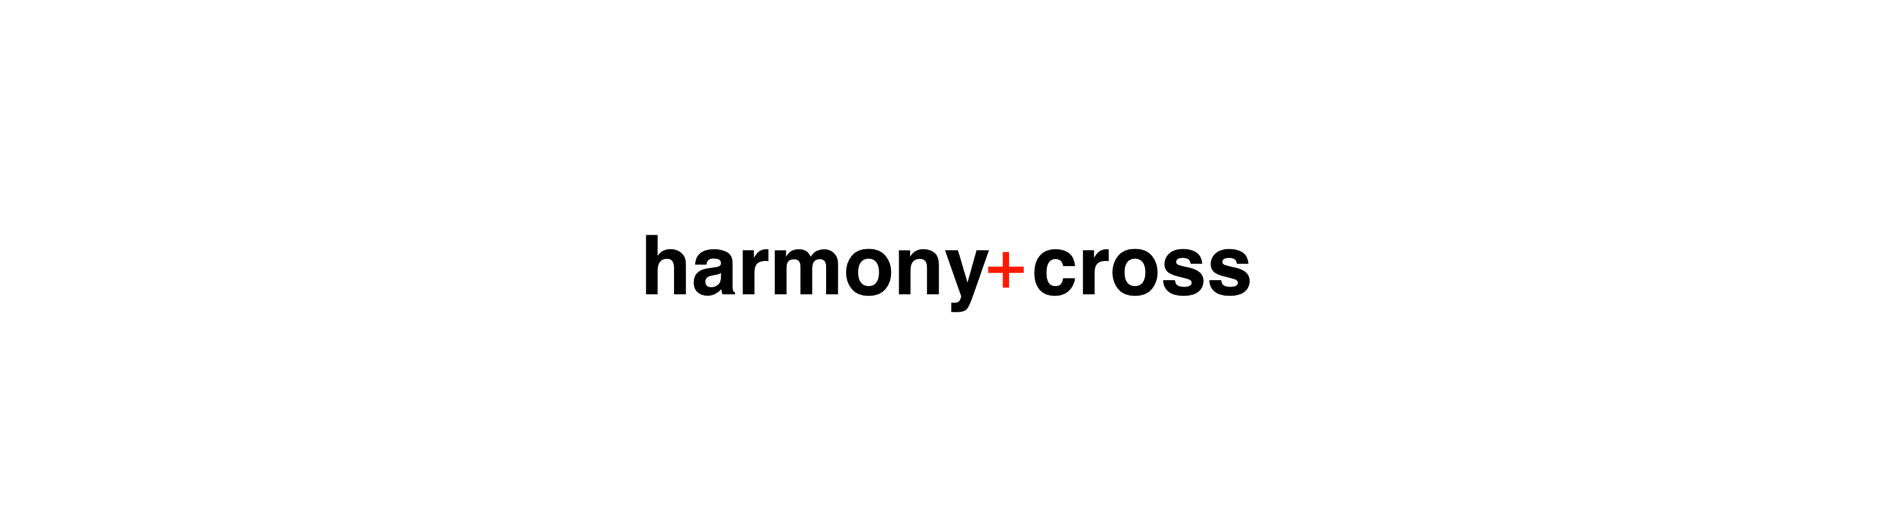 harmony+cross